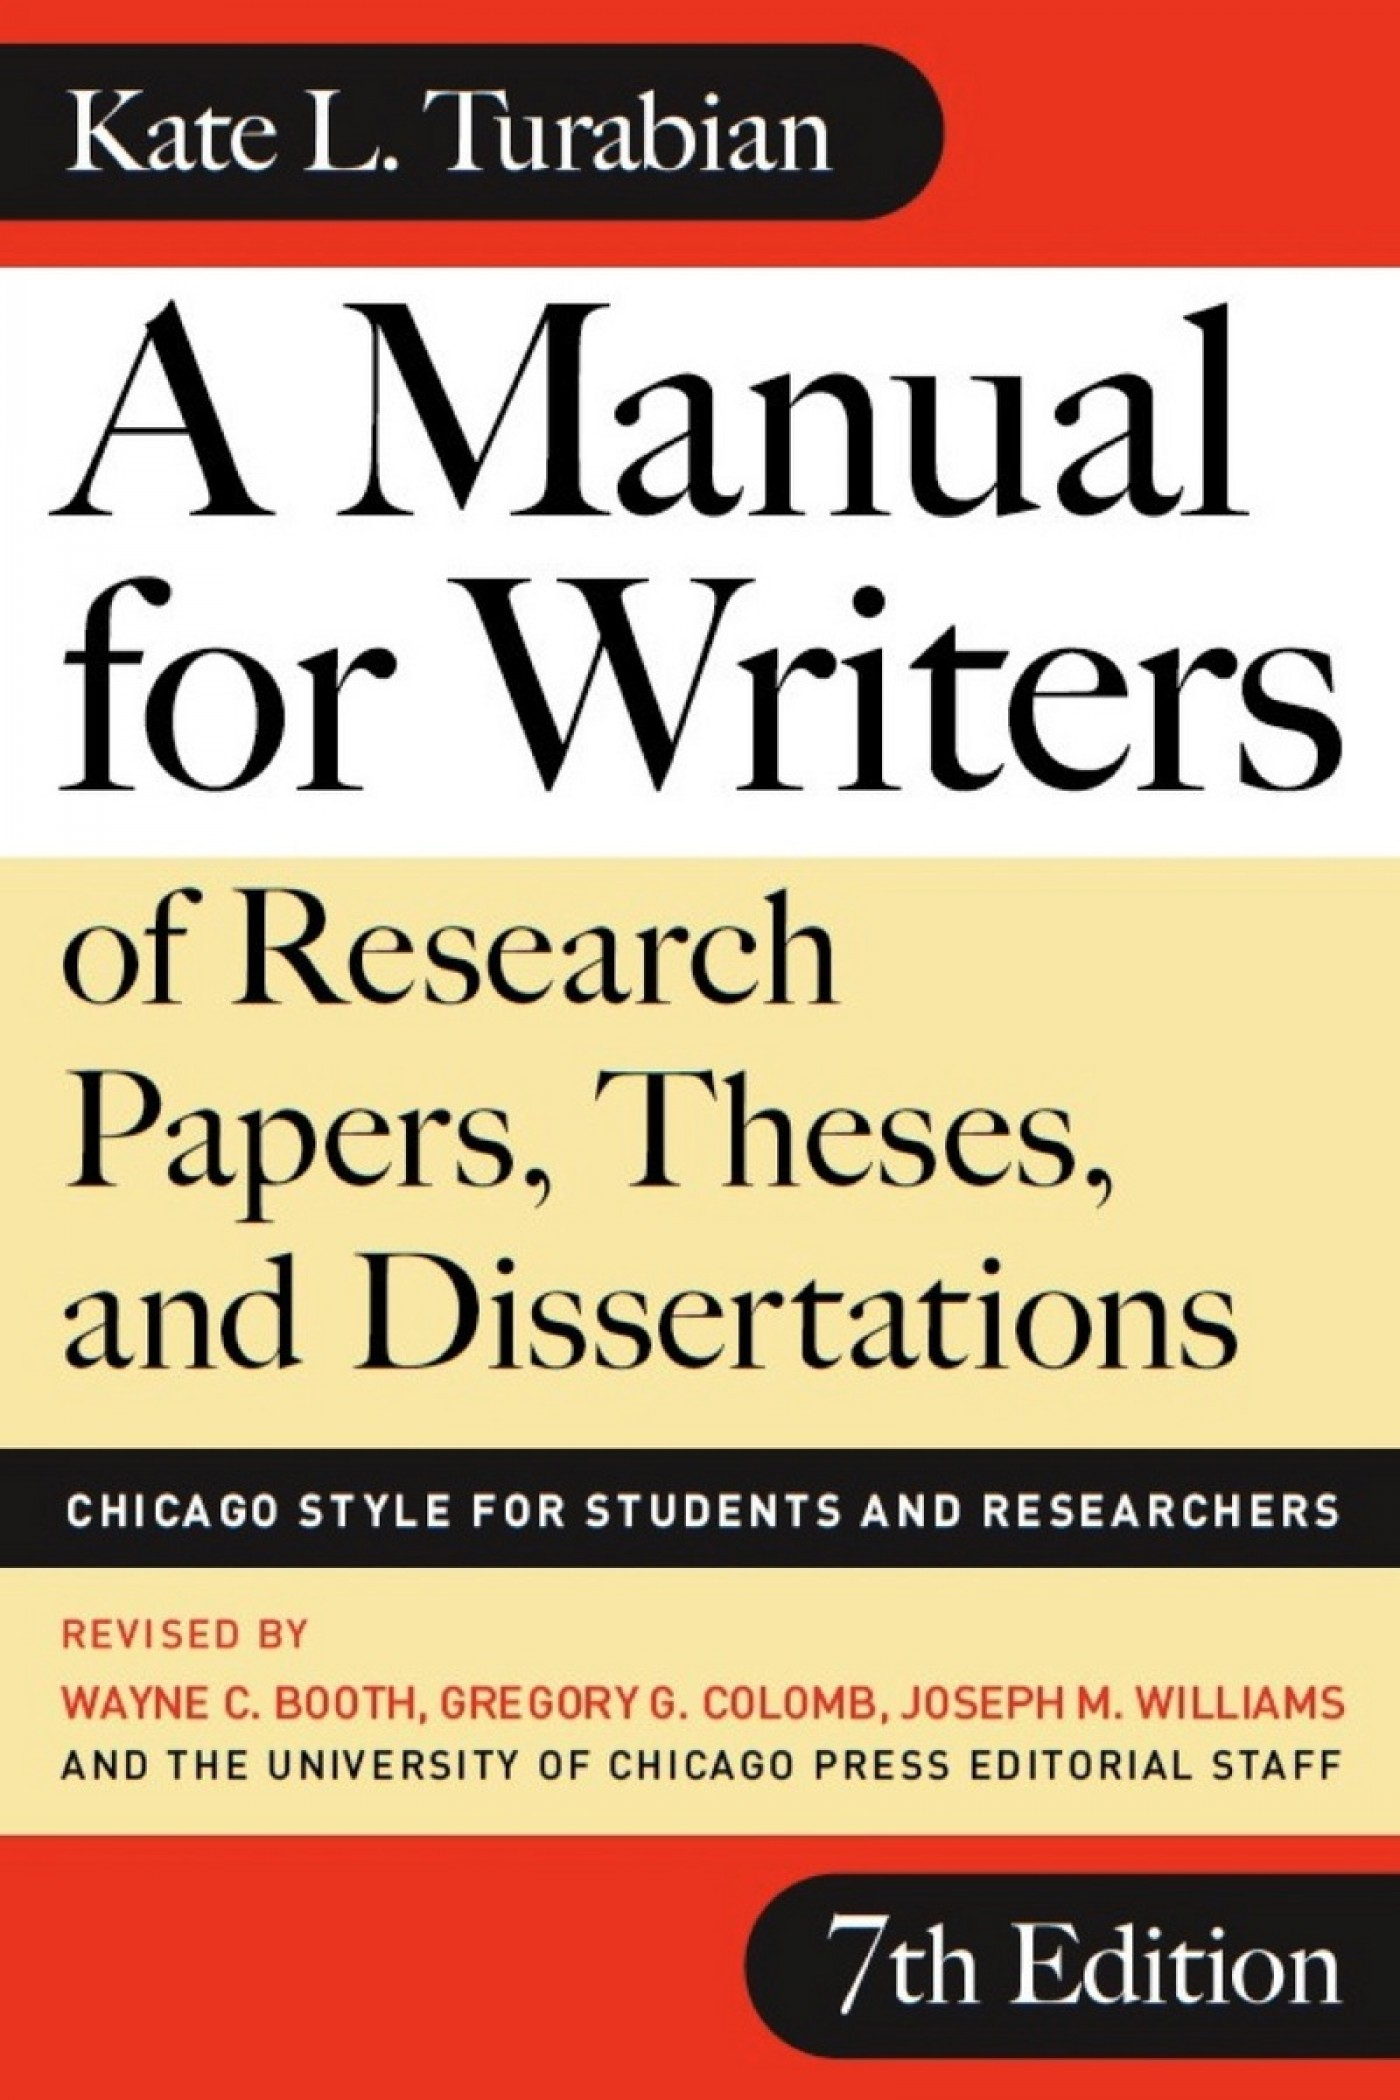 008 Manual For Writers Of Researchs Theses And Dissertations Frontcover Magnificent Research Papers A Amazon 9th Edition Pdf 8th 13 1400